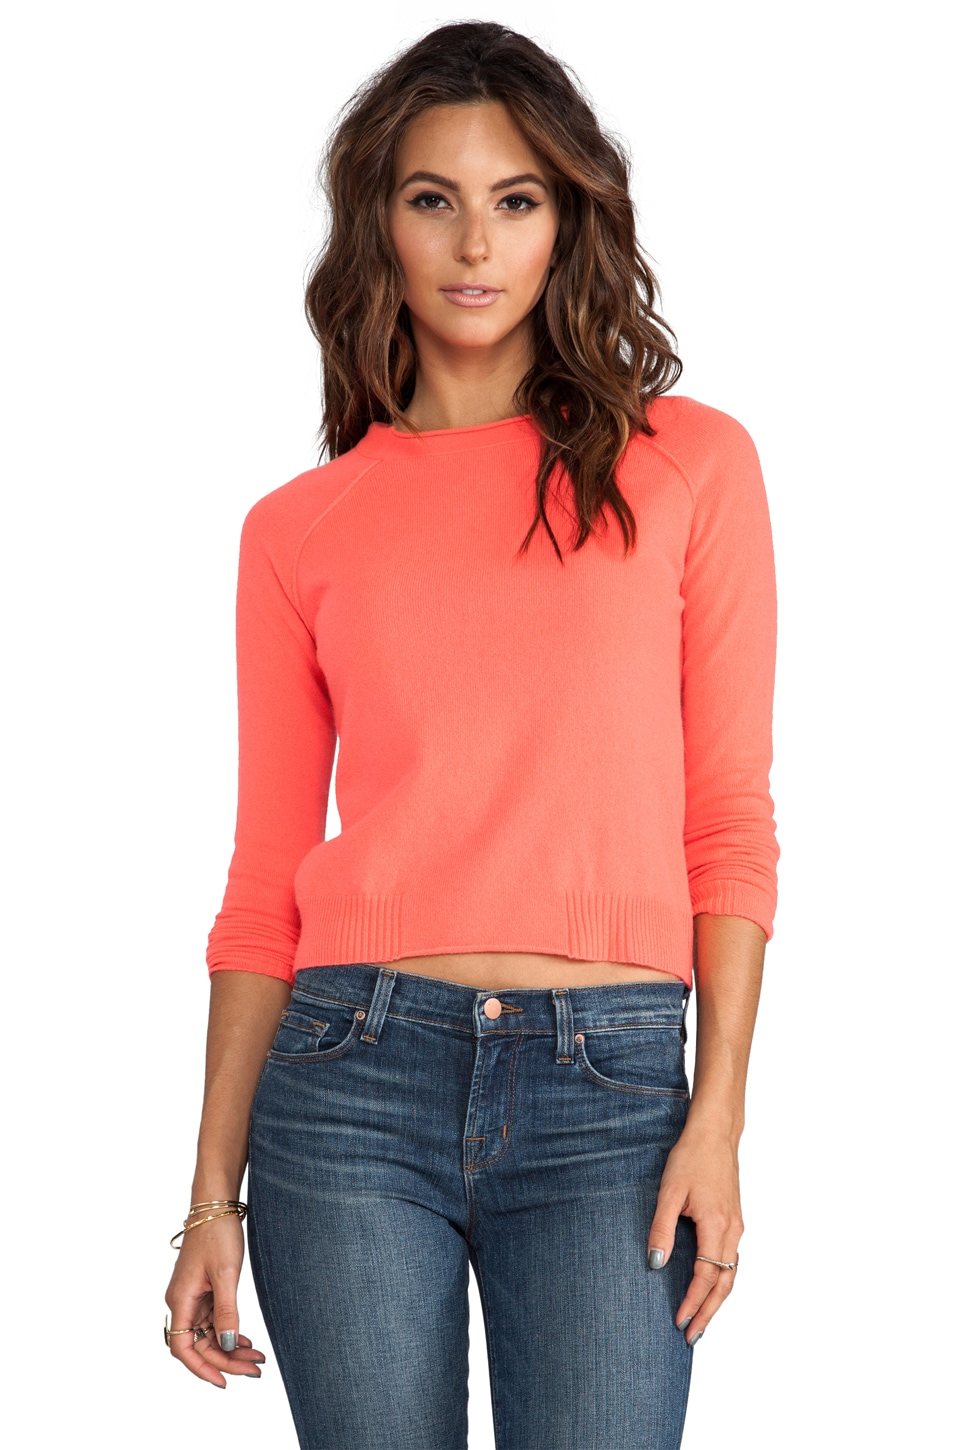 Autumn Cashmere Raw Edge Crop Sweater en Flash